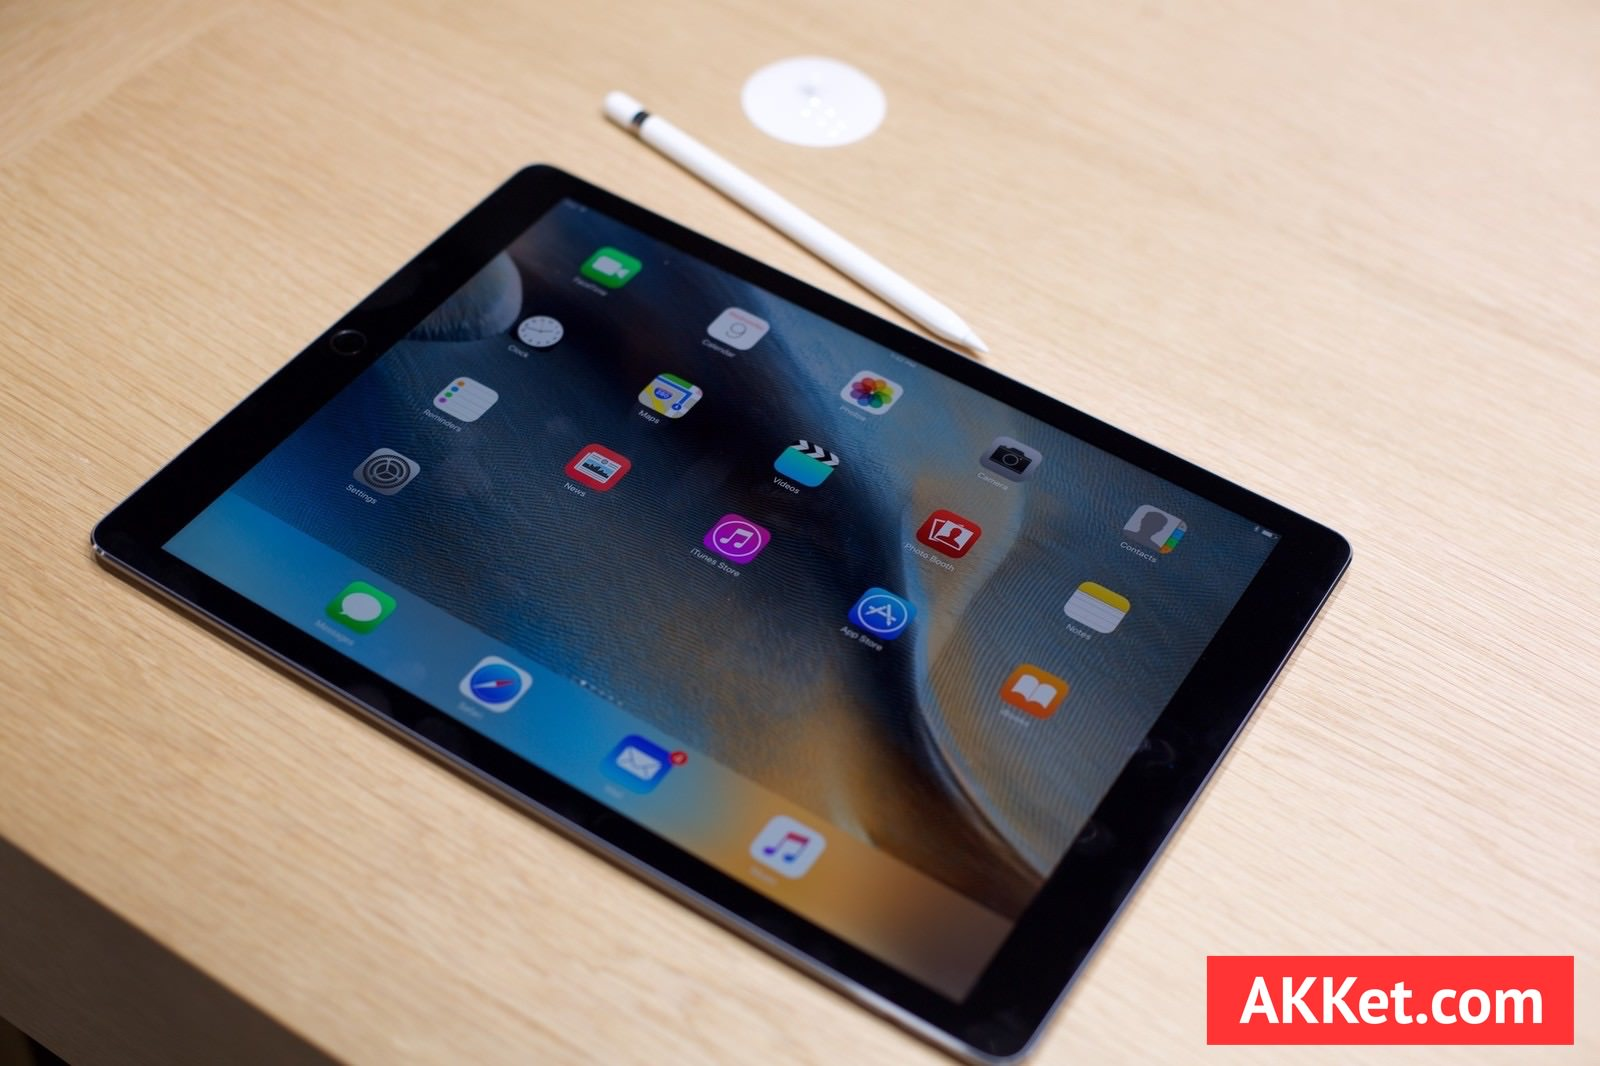 iPad Pro review akket.com pencil smrt keyboard 2